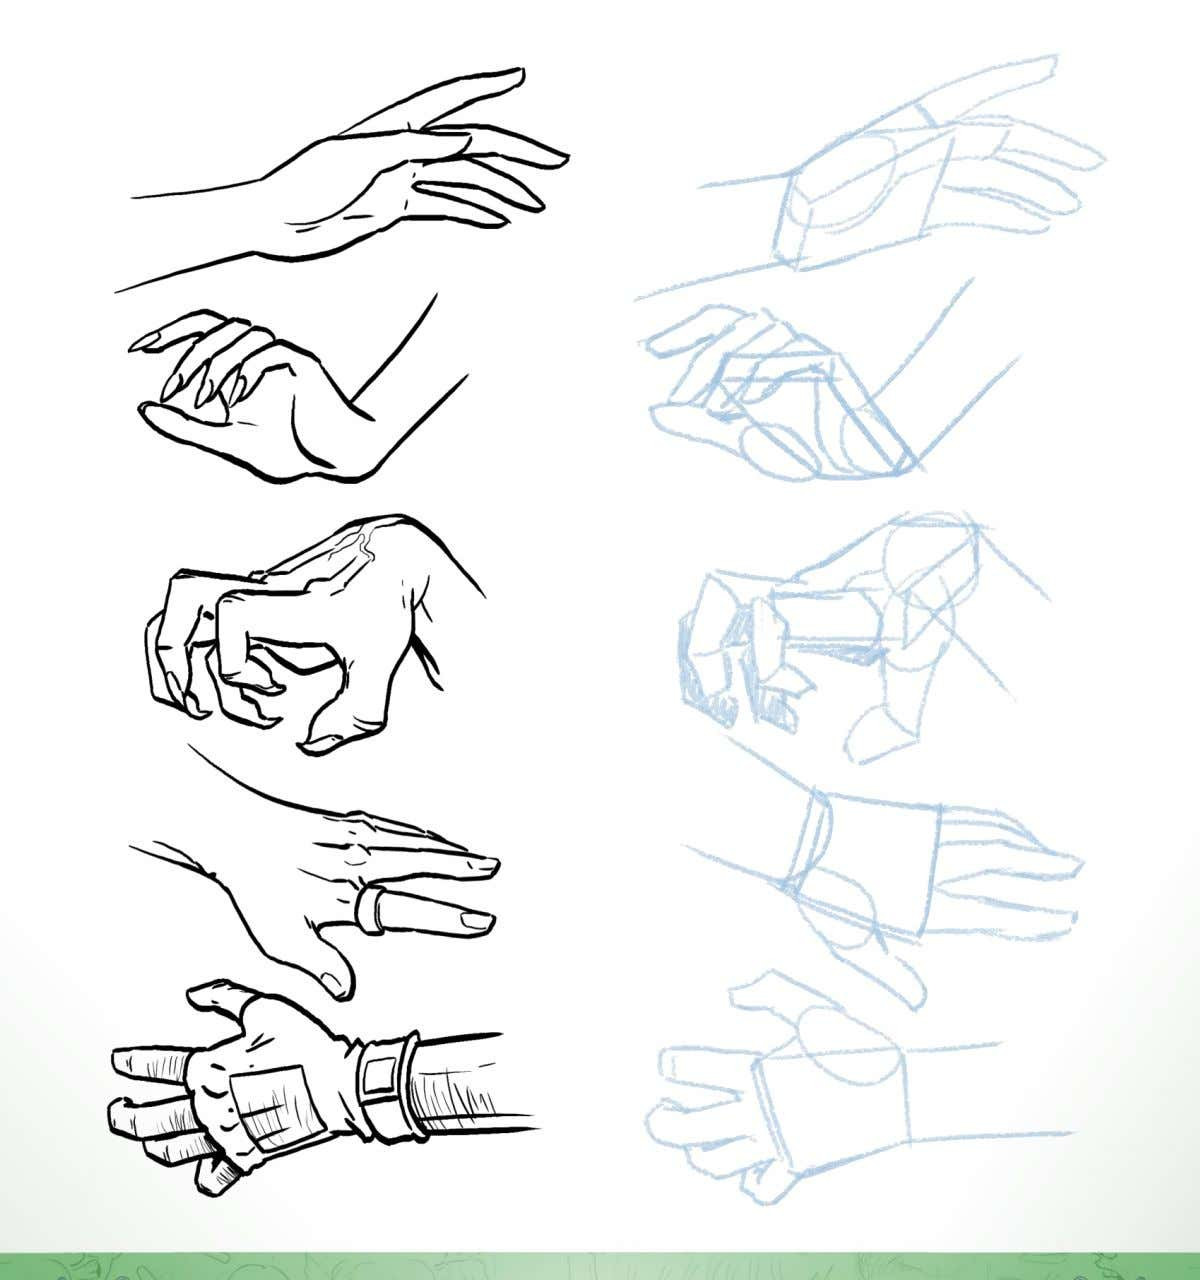 Exercise 9: Reproduce the details of the hands on the provided construction work 10